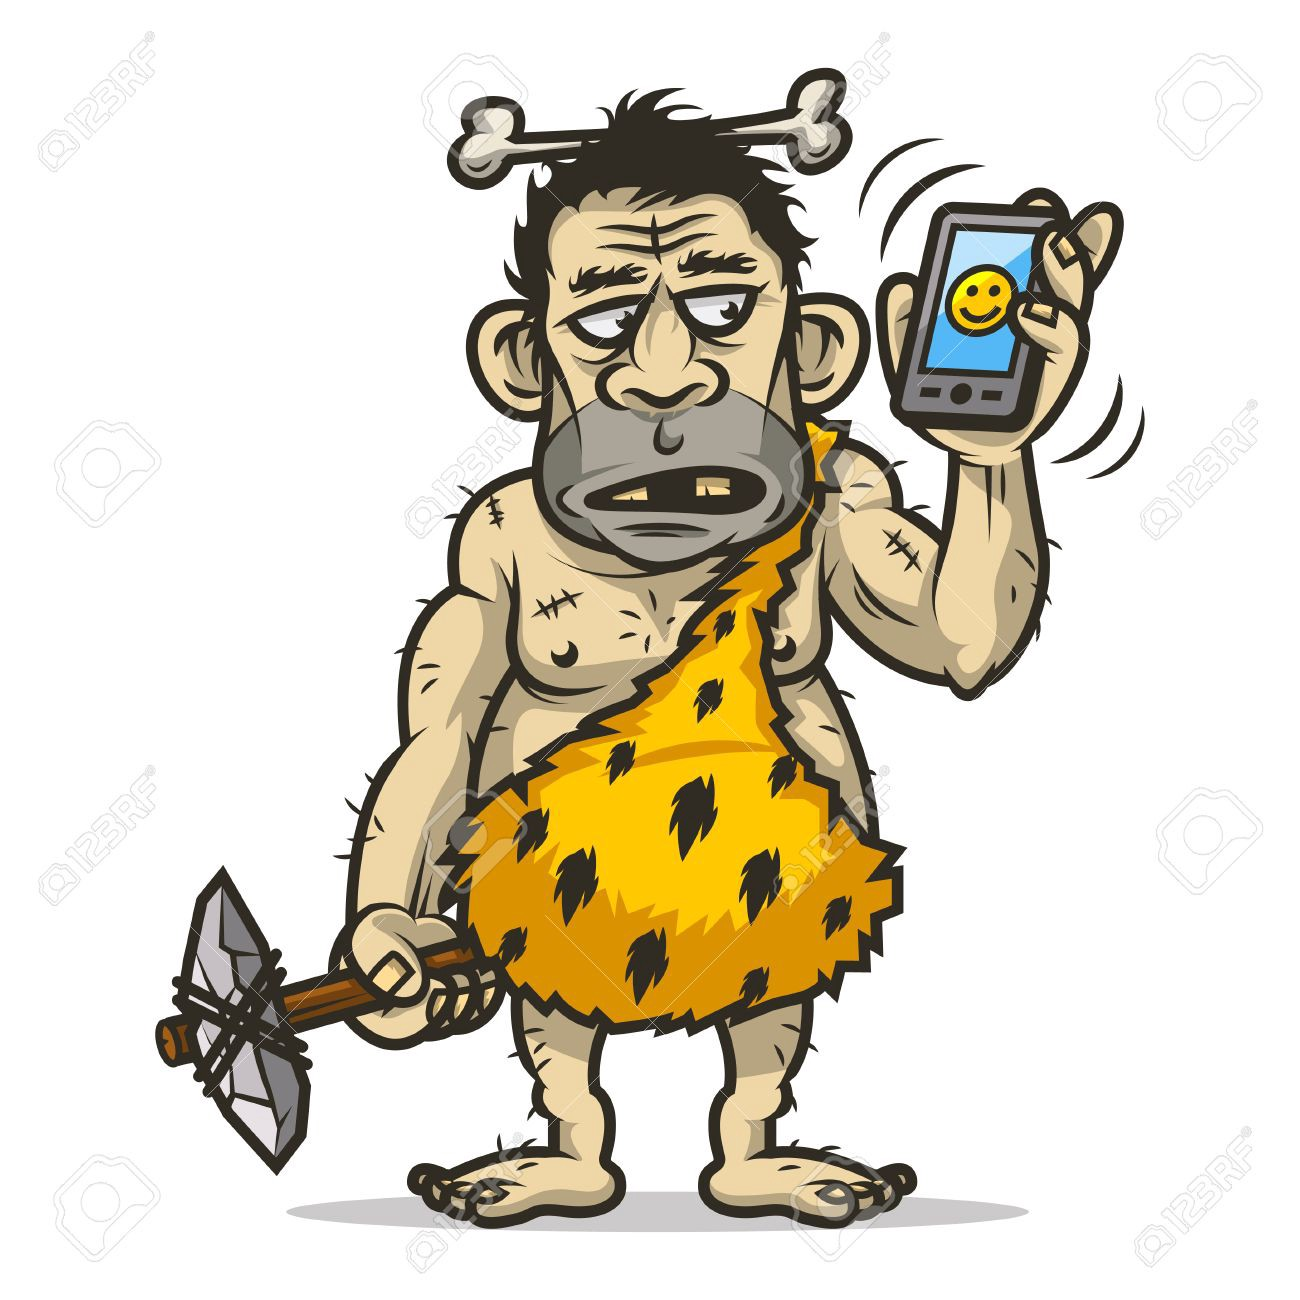 cartoon neanderthal with a smartphone